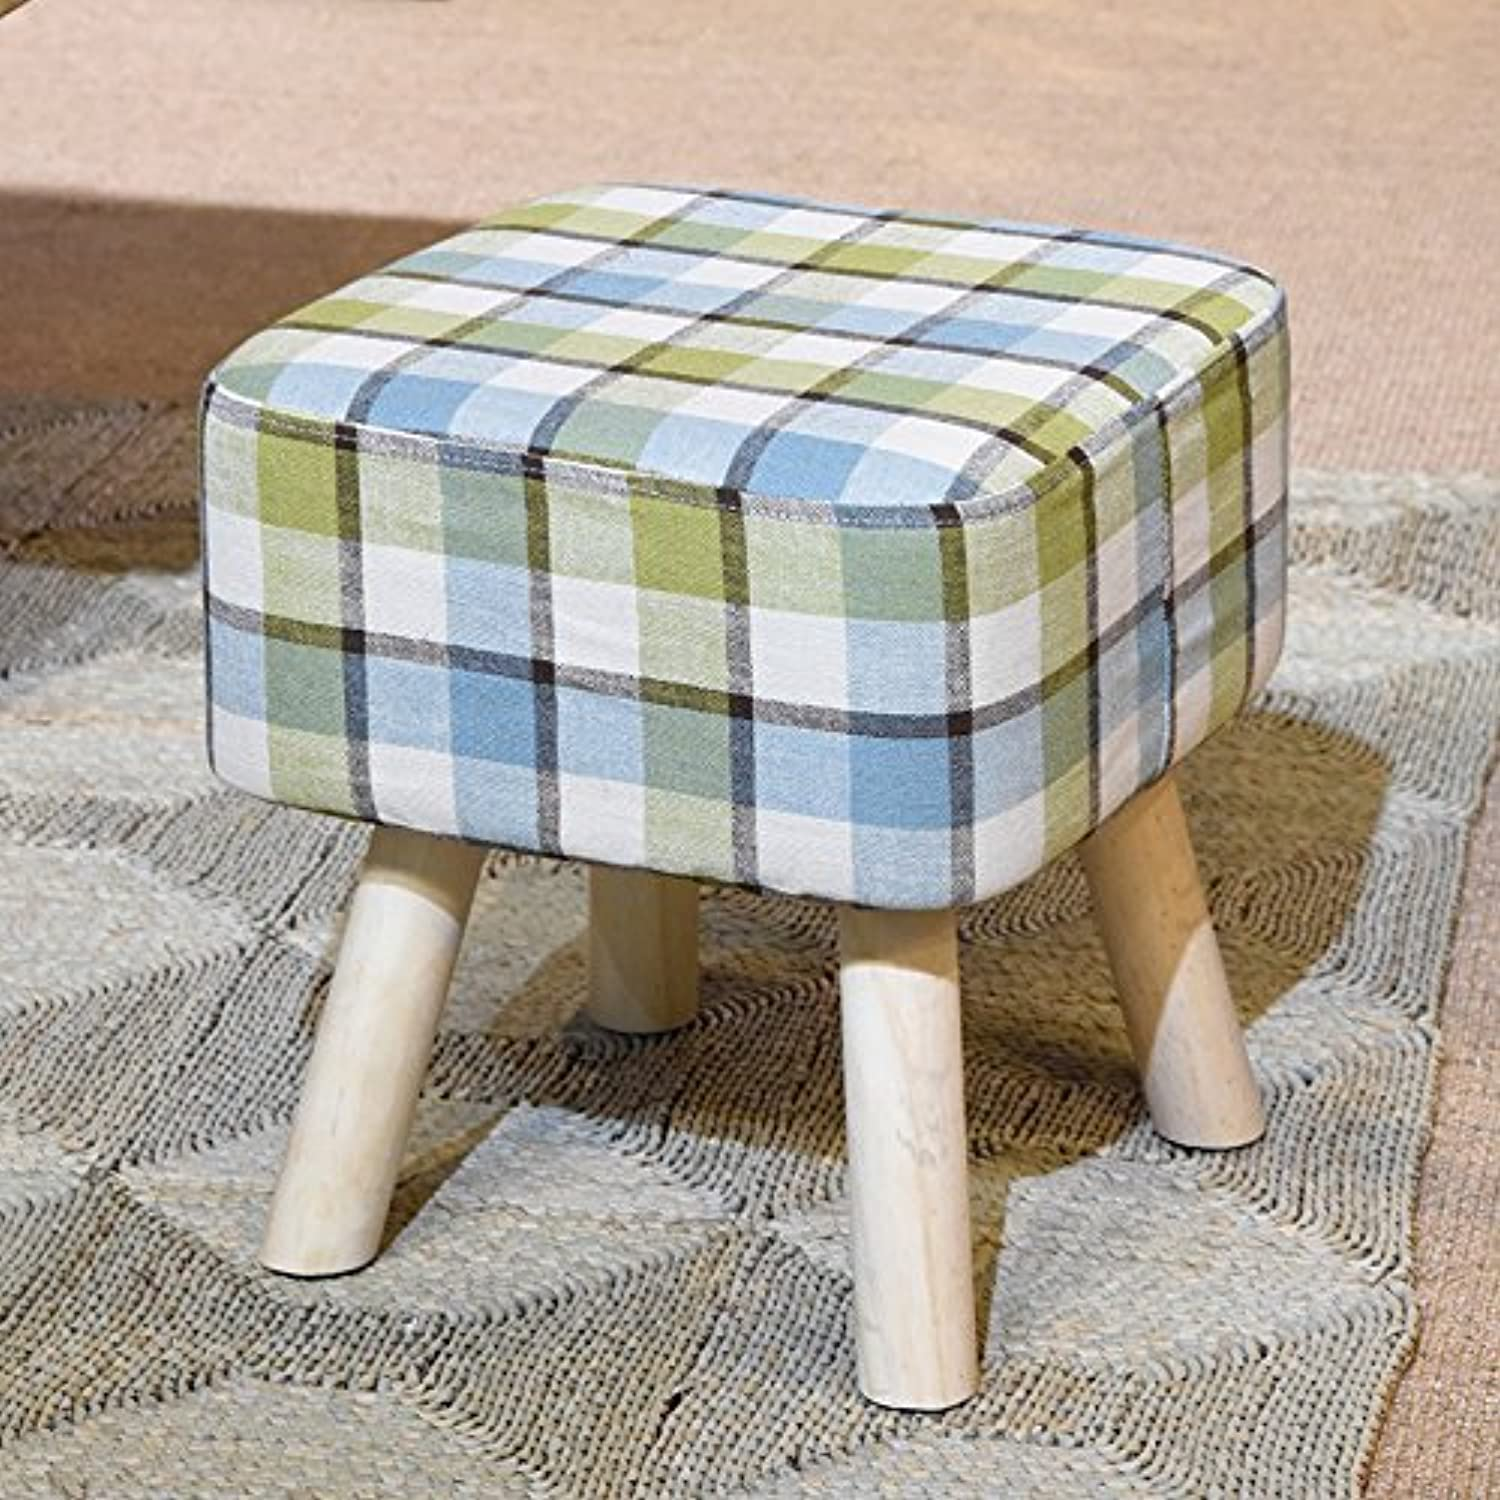 Solid Wood shoes Bench Creative Sofa Stool Fabric Stool Home Stool High Stool Multifunctional Stool 0522A (color   Green)